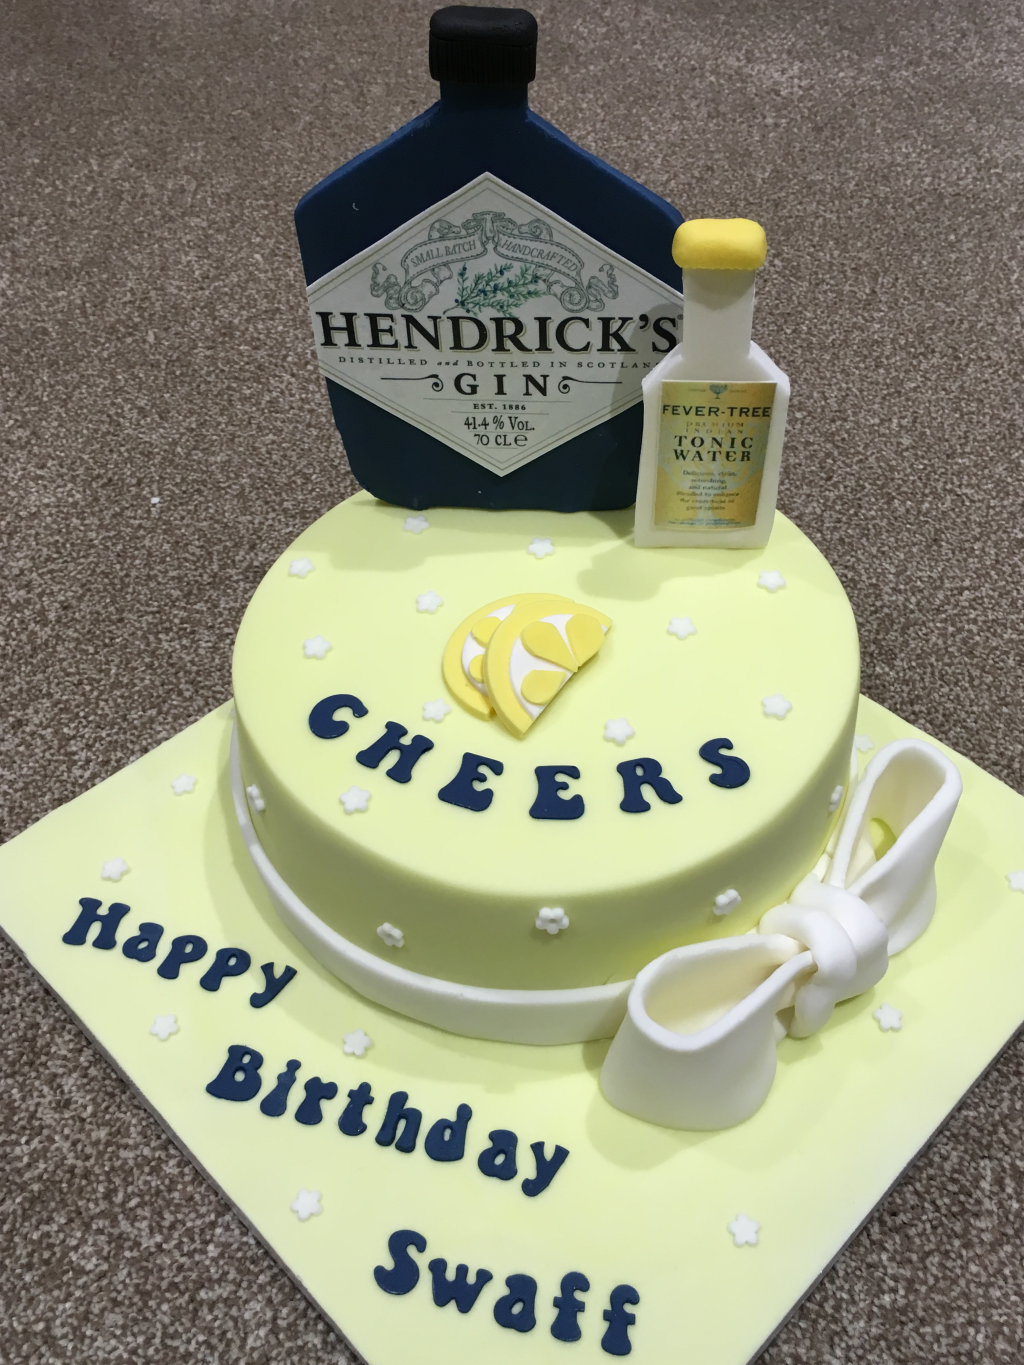 Gin-and-Tonic-Hendricks-cake